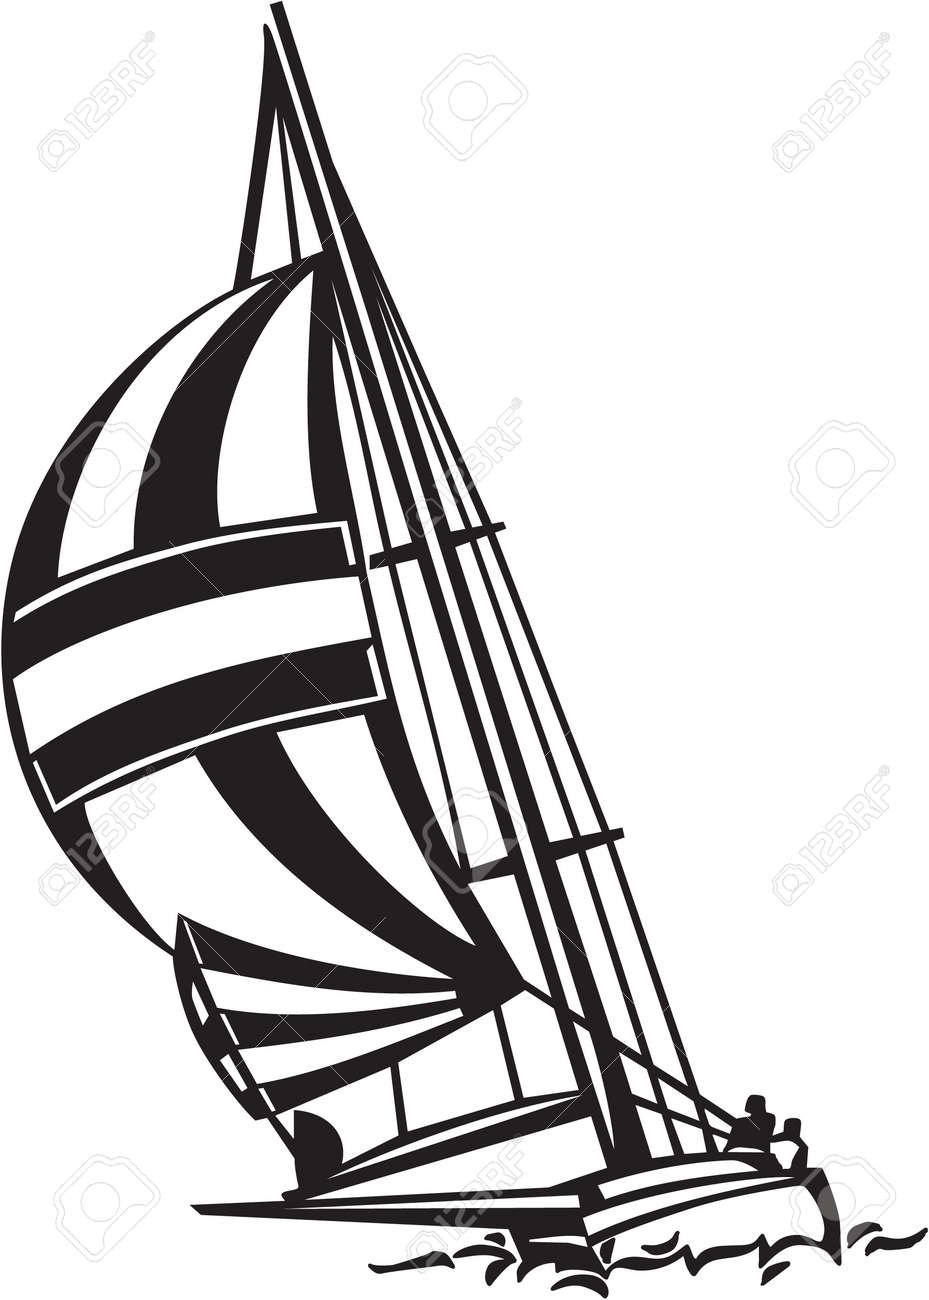 Sailboat Vinyl Ready Illustration Stock Vector - 14353842